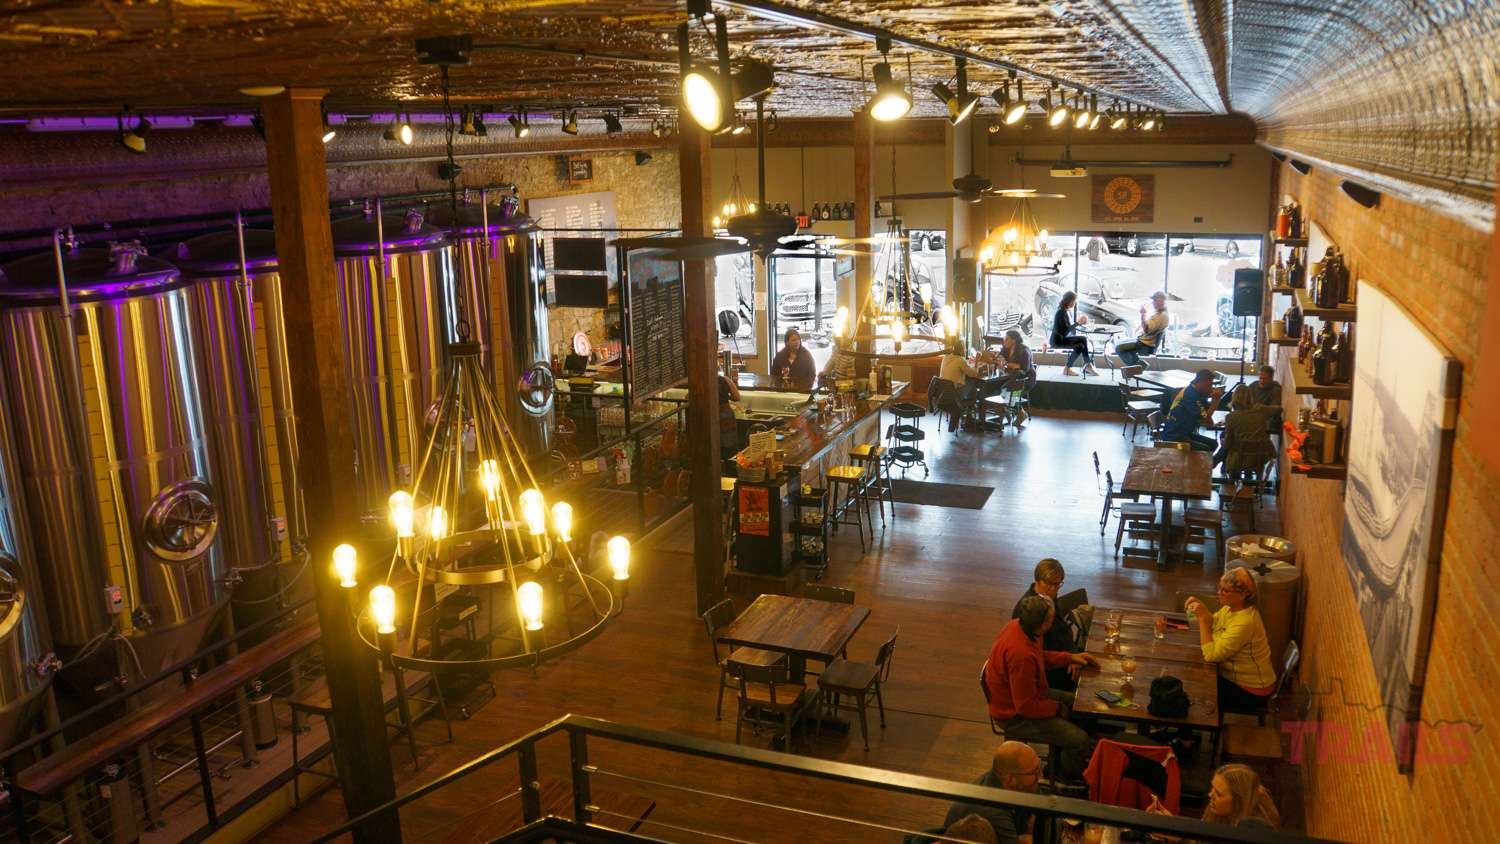 View of the interior of Spiral Brewery